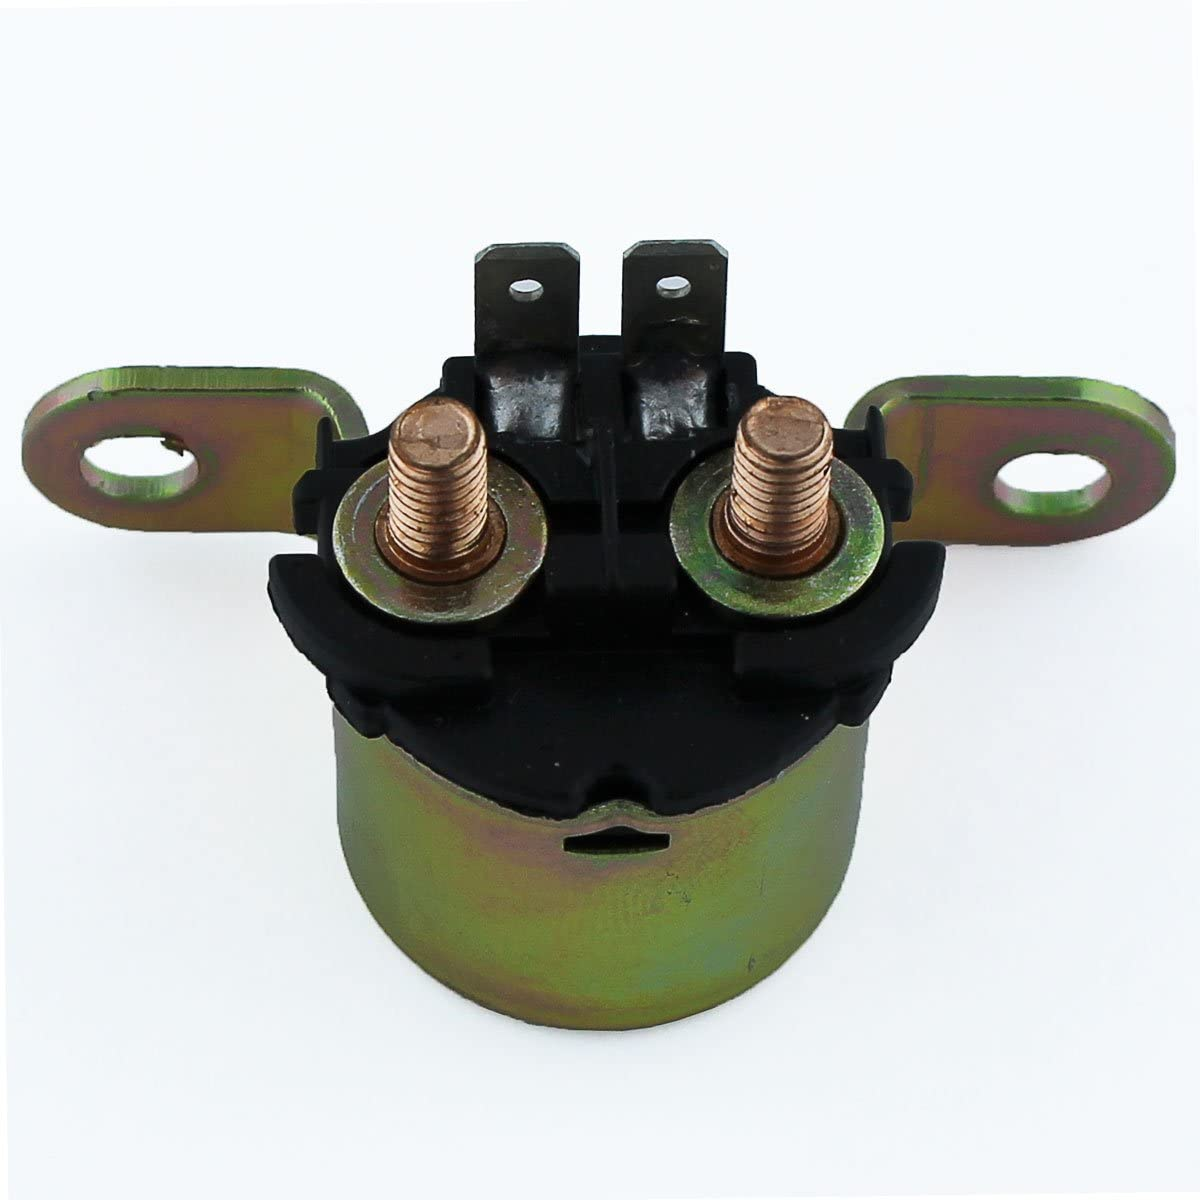 Caltric Starter Solenoid Compatible With Now free shipping Skandic Swt Ski-Doo Sale special price V-8